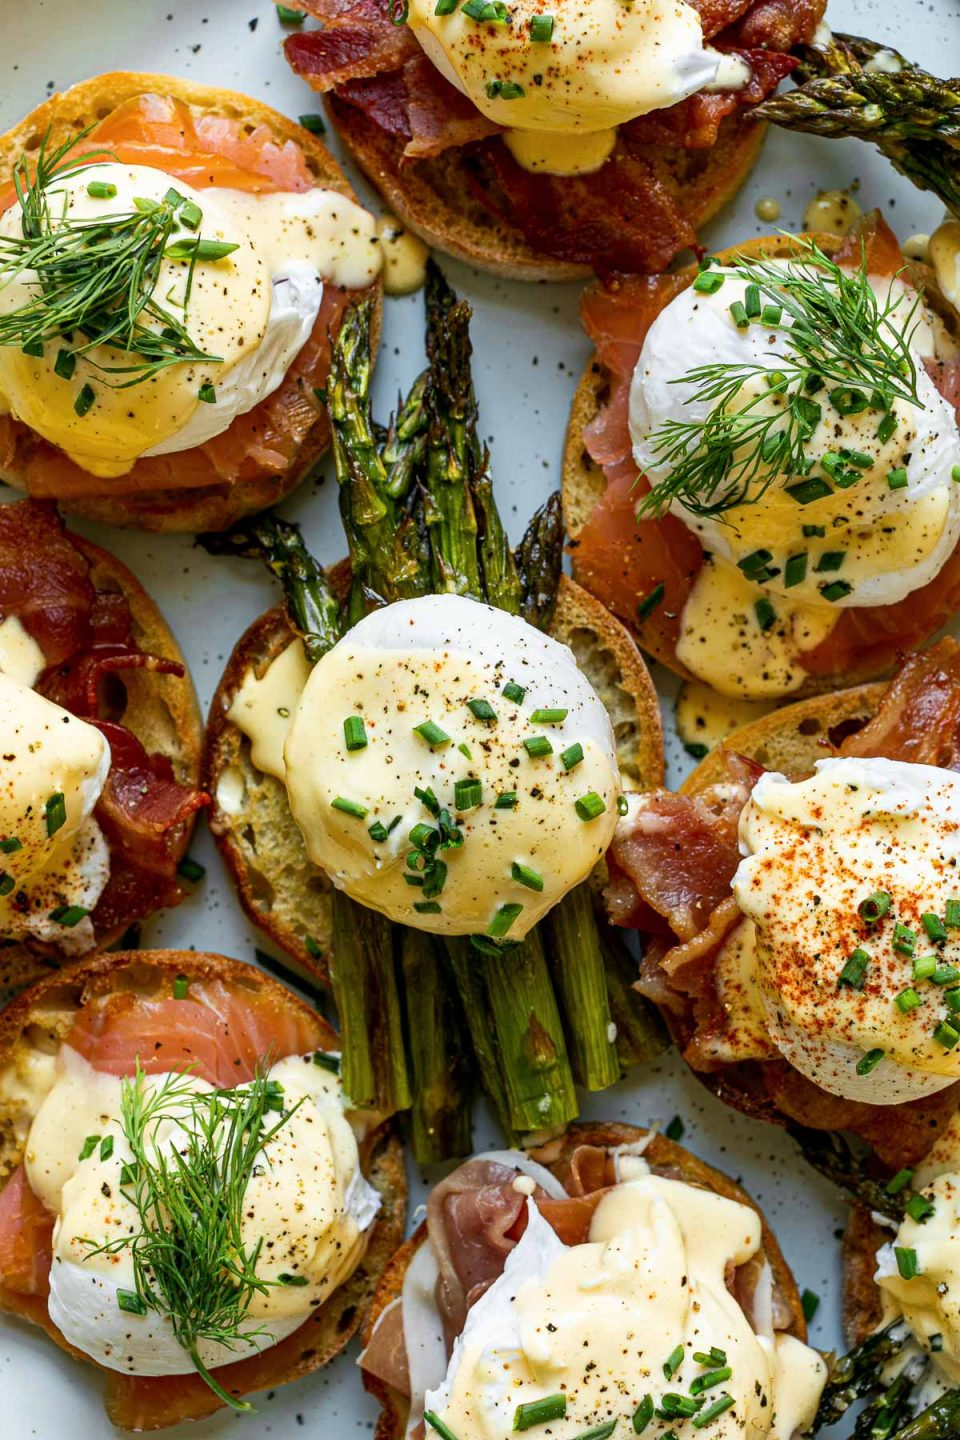 Eggs benedict variations with asparagus, bacon, prosciutto & smoked salmon atop a light blue speckled platter, atop a white surface.